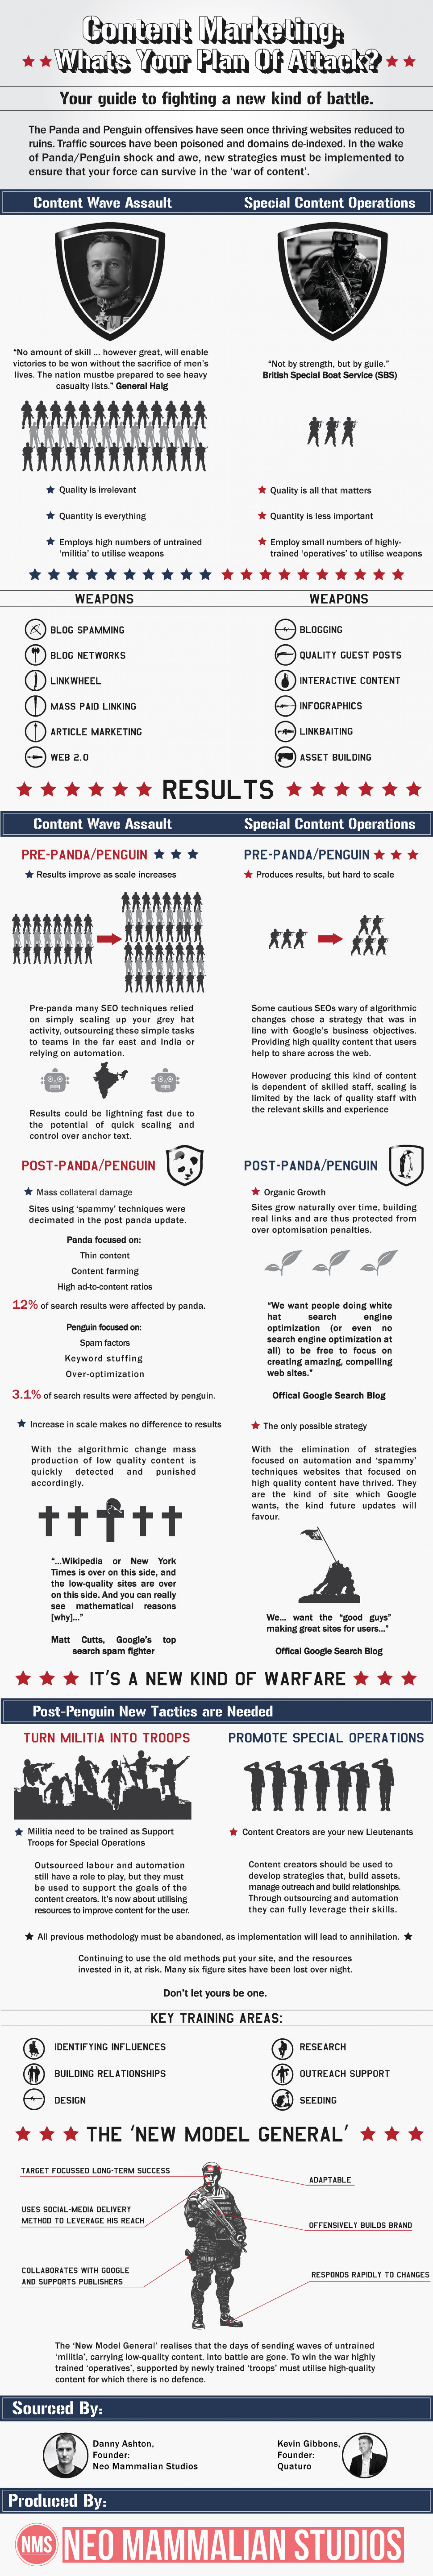 Content Marketing - Whats Your Plan of Attack Infographic